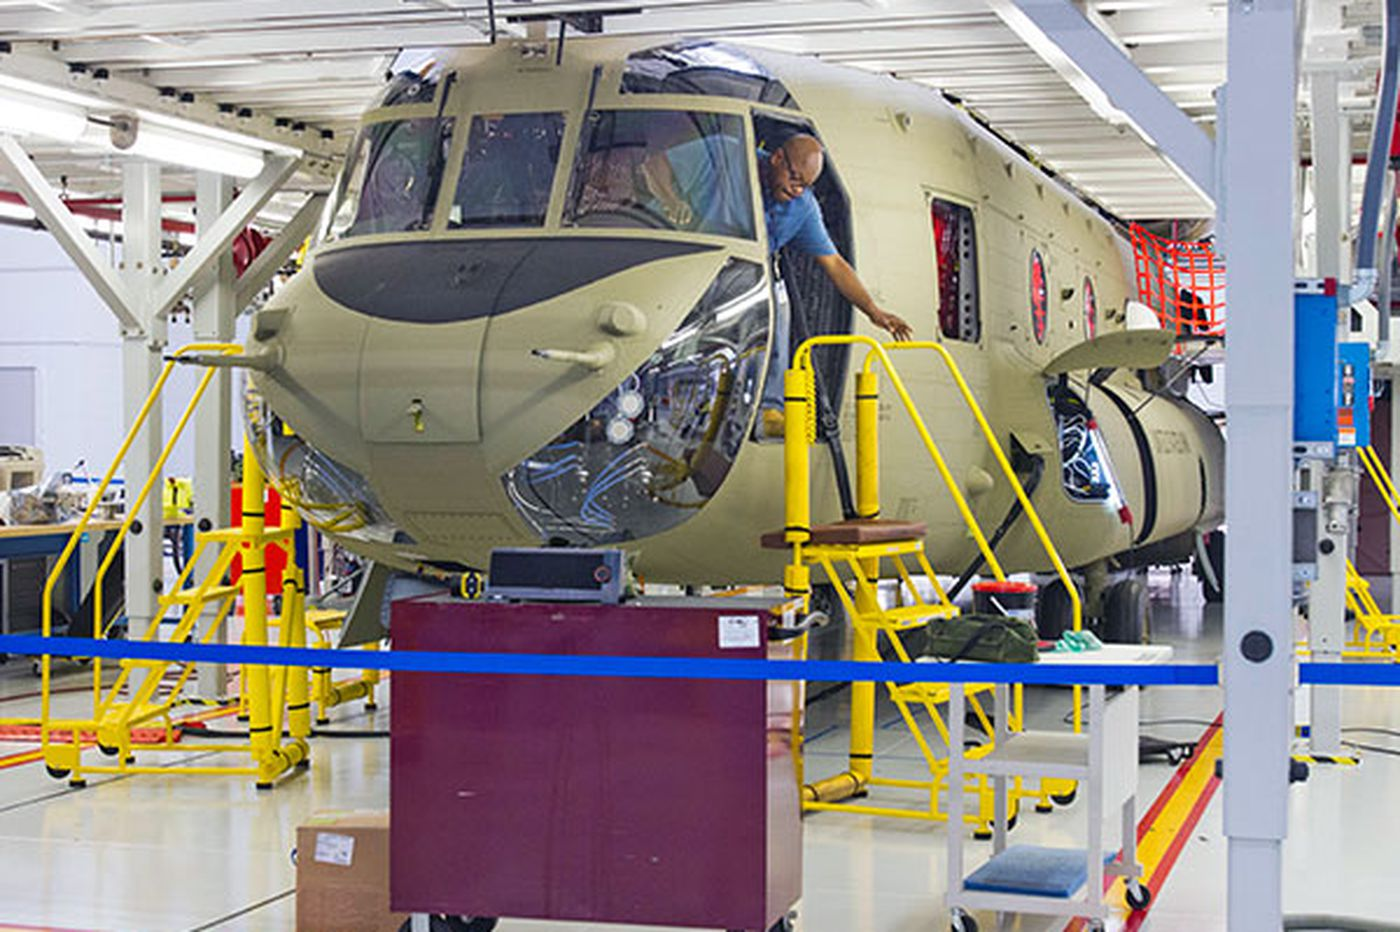 Delco plant cited in report saying Boeing overbilled